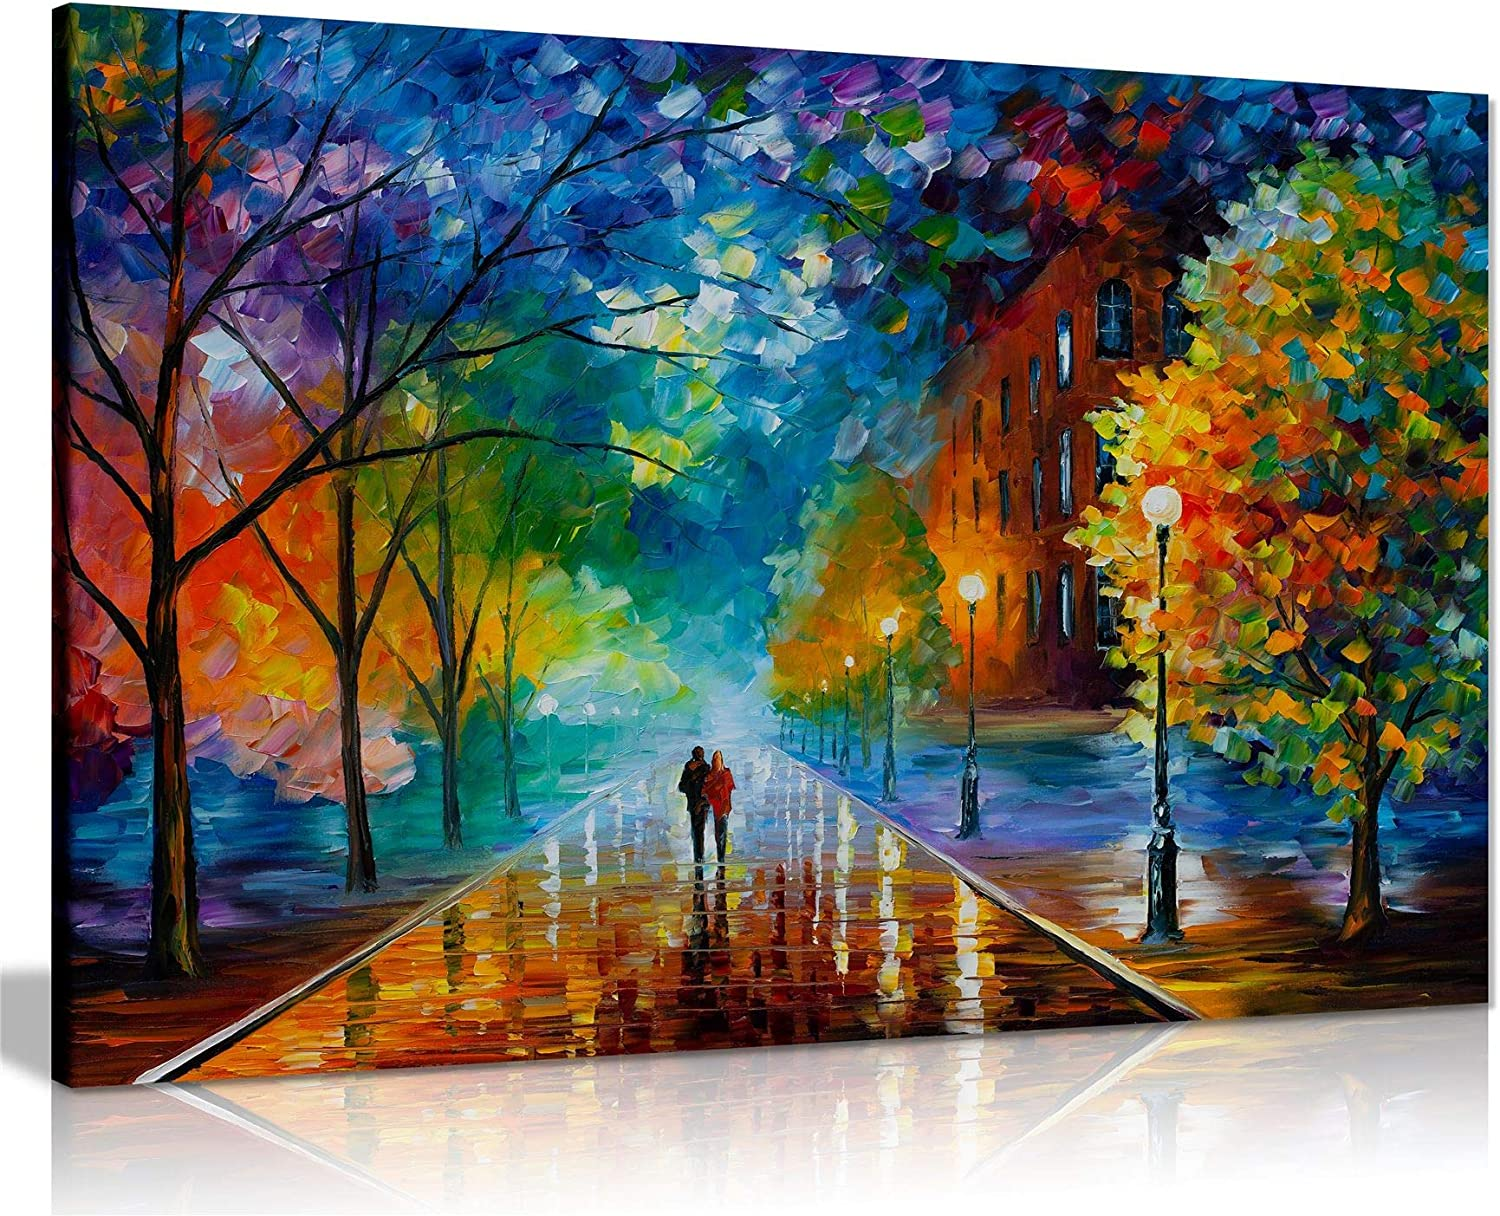 Freshness Of Cold By Leonid Afremov Canvas Wall Art Picture Print For Home Decor 24x16 Posters Prints